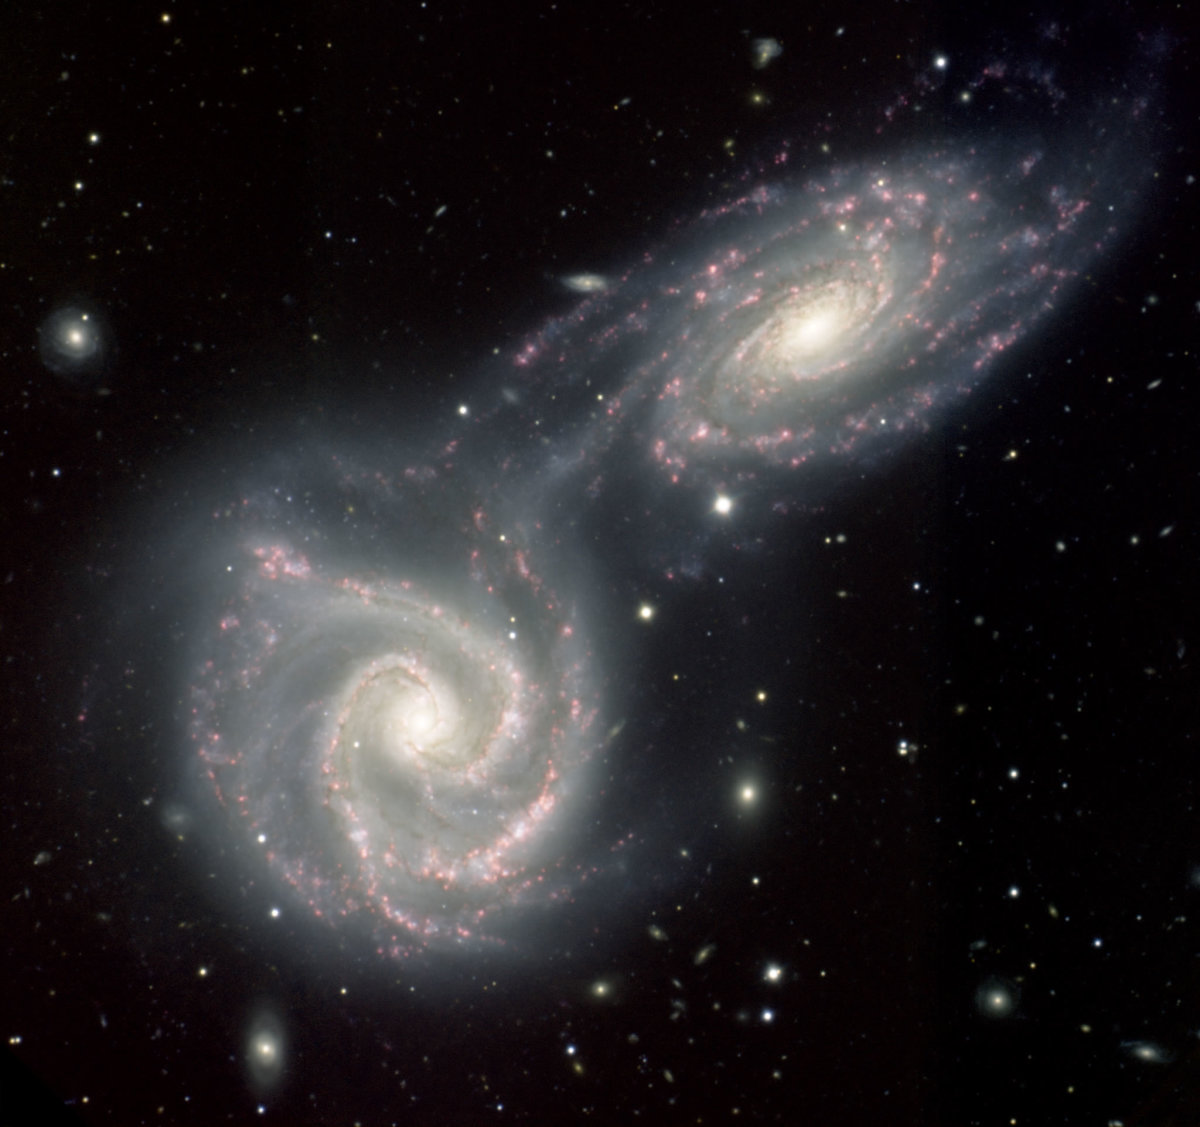 Two colliding galaxies.